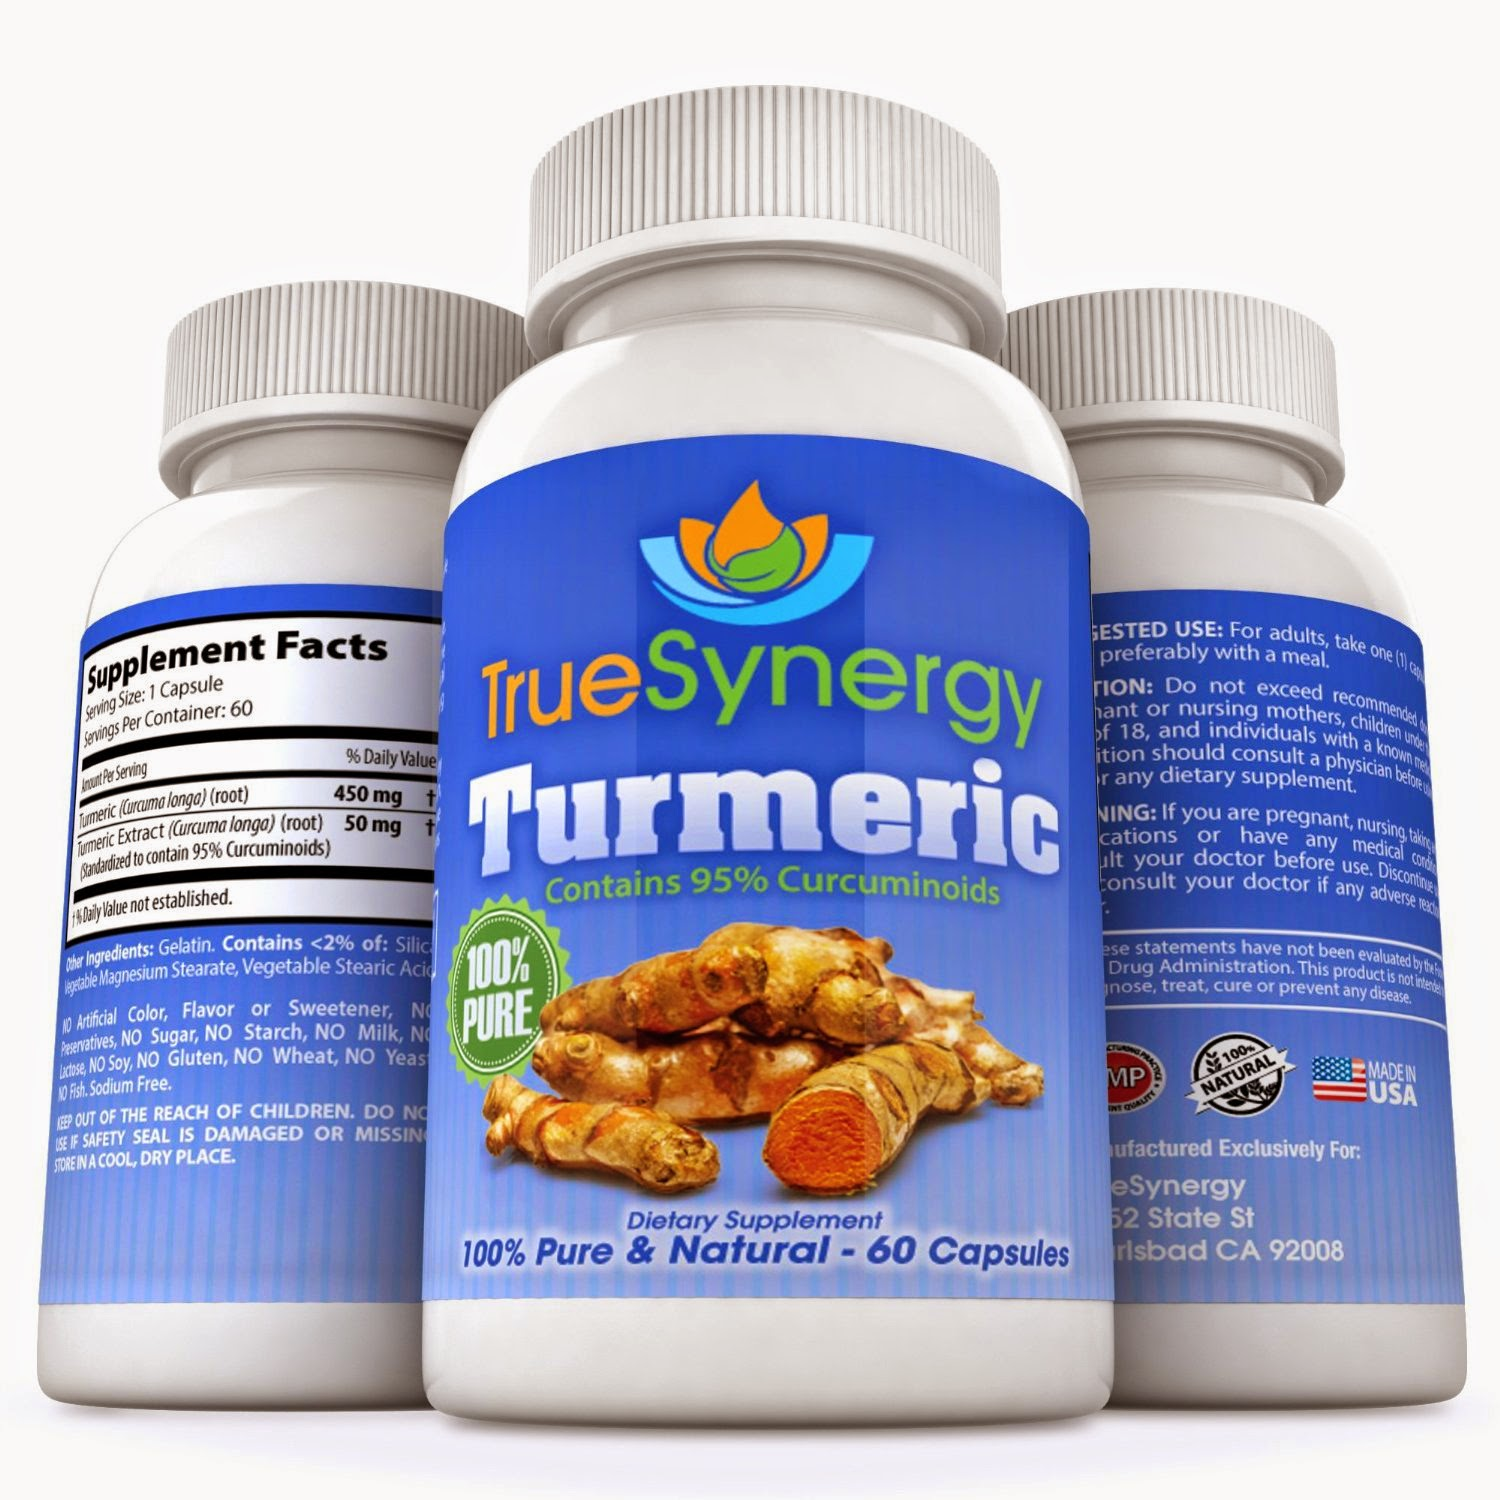 True Synergy offers a Pure and Potent Turmeric Curcumin Extract